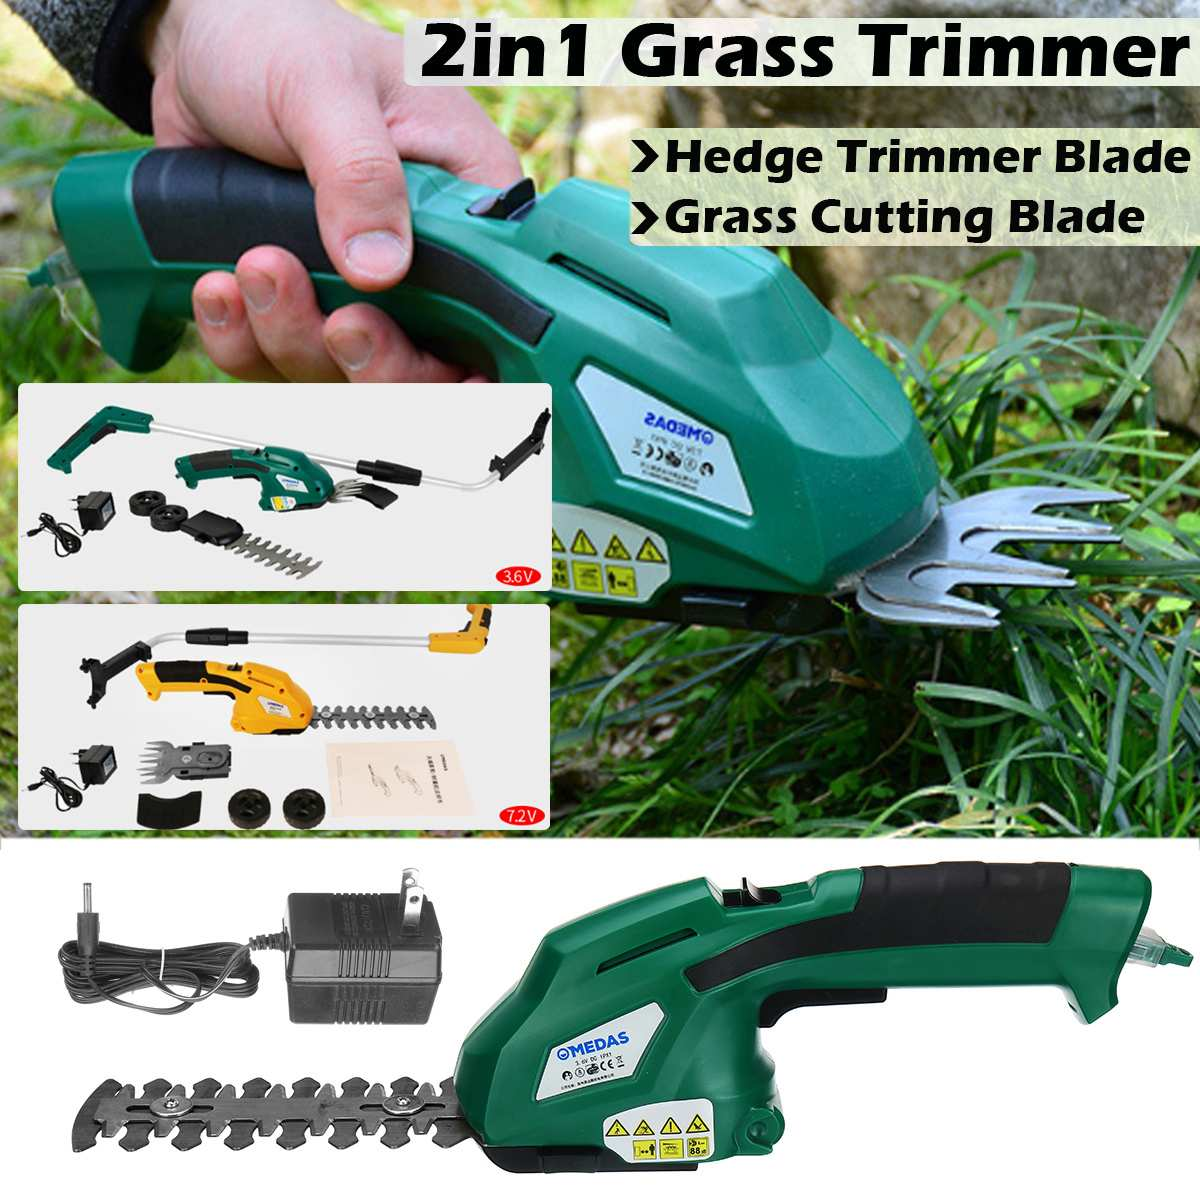 7.2V 3.6V 2in1 Li-Ion Battery Pruning Tool Cordless Hedge Trimmer Grass Trimmer Brush Cutter Shrub Shear Garden Tools